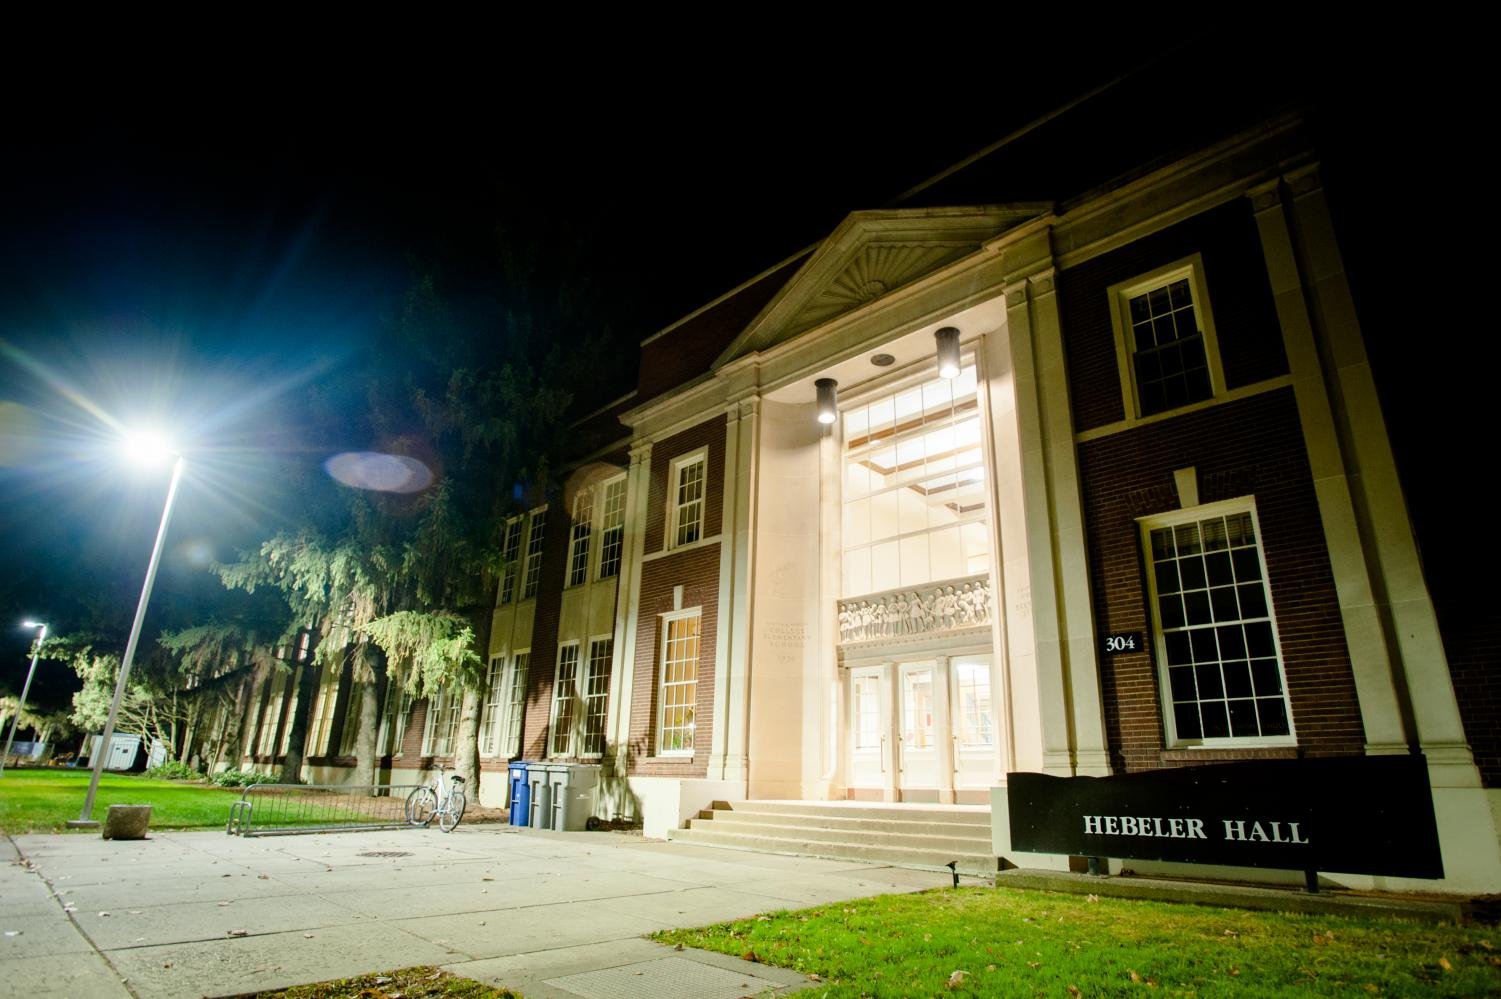 Hebeler Hall, which currently houses computer science departments, has been considered an option to be leased by the school district. Xander Fu/The Observer.